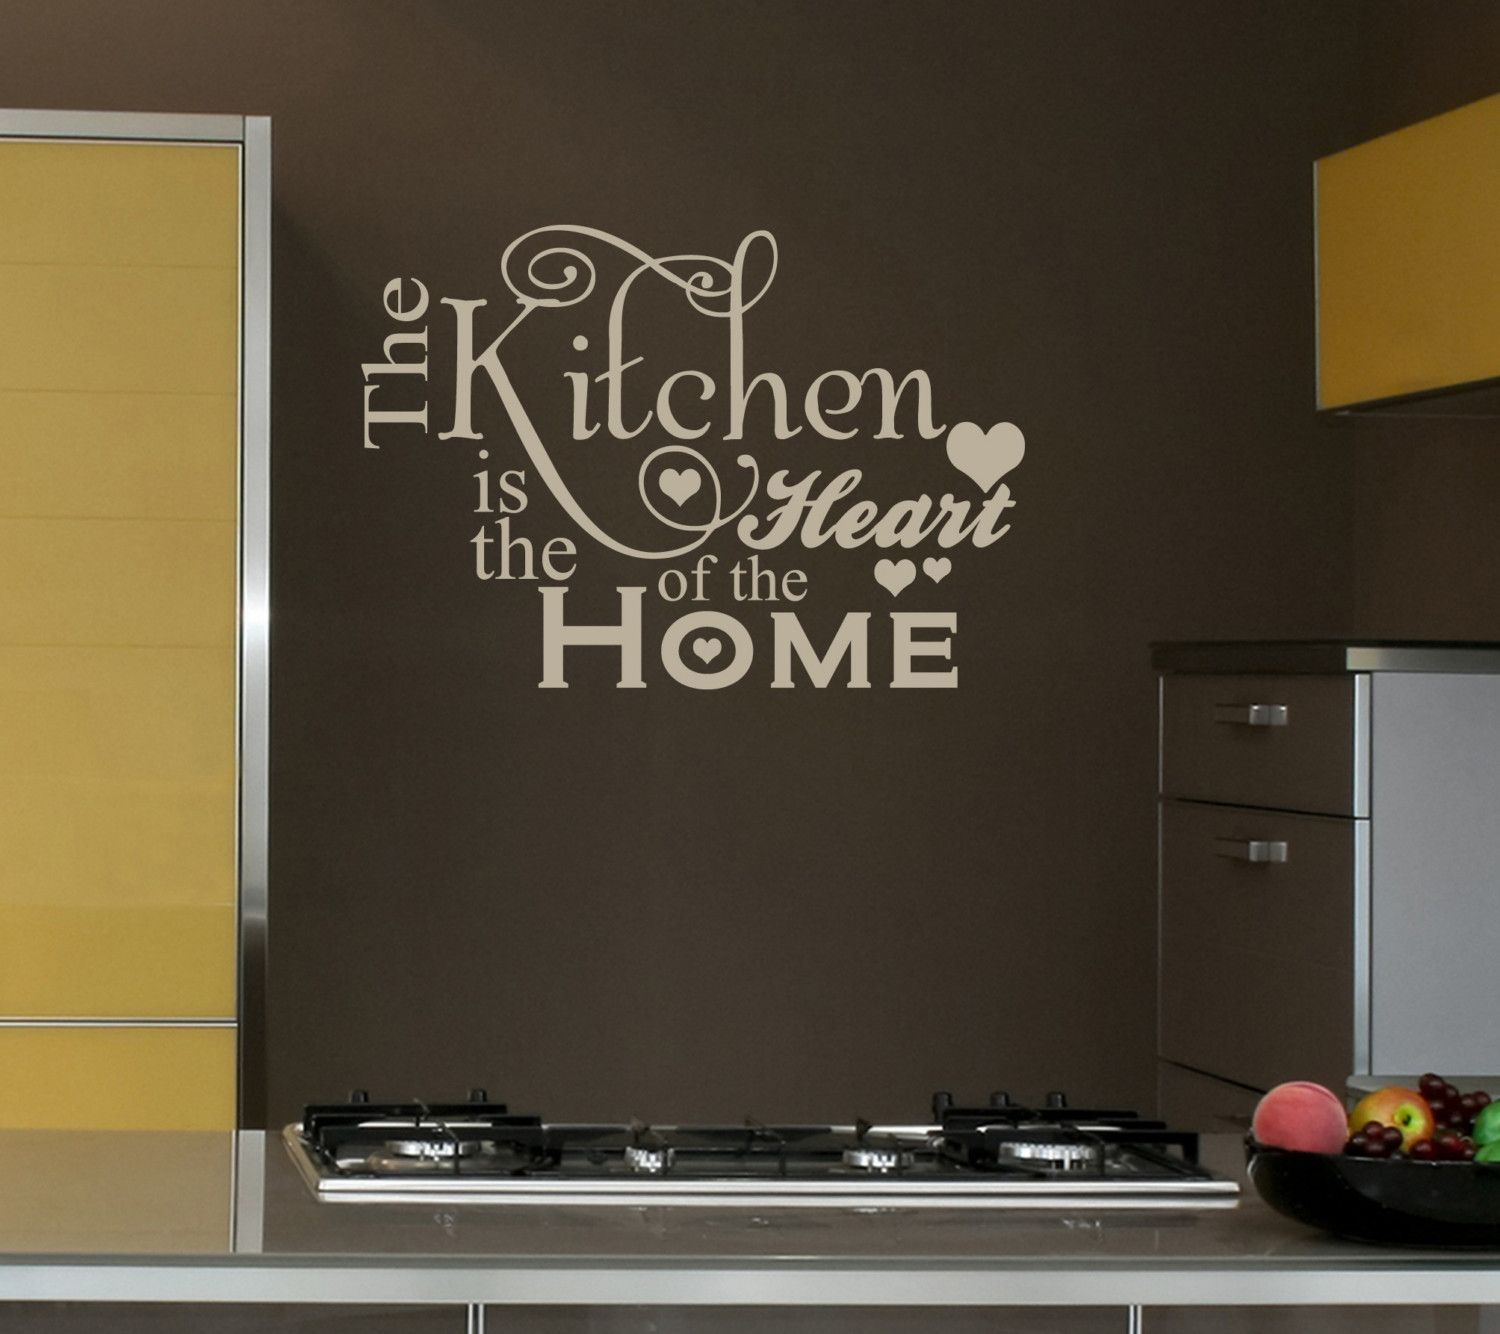 X Kitchen Heart Home Decal Shabby Chic Decor Vinyl Wall - Vinyl decals for kitchen walls